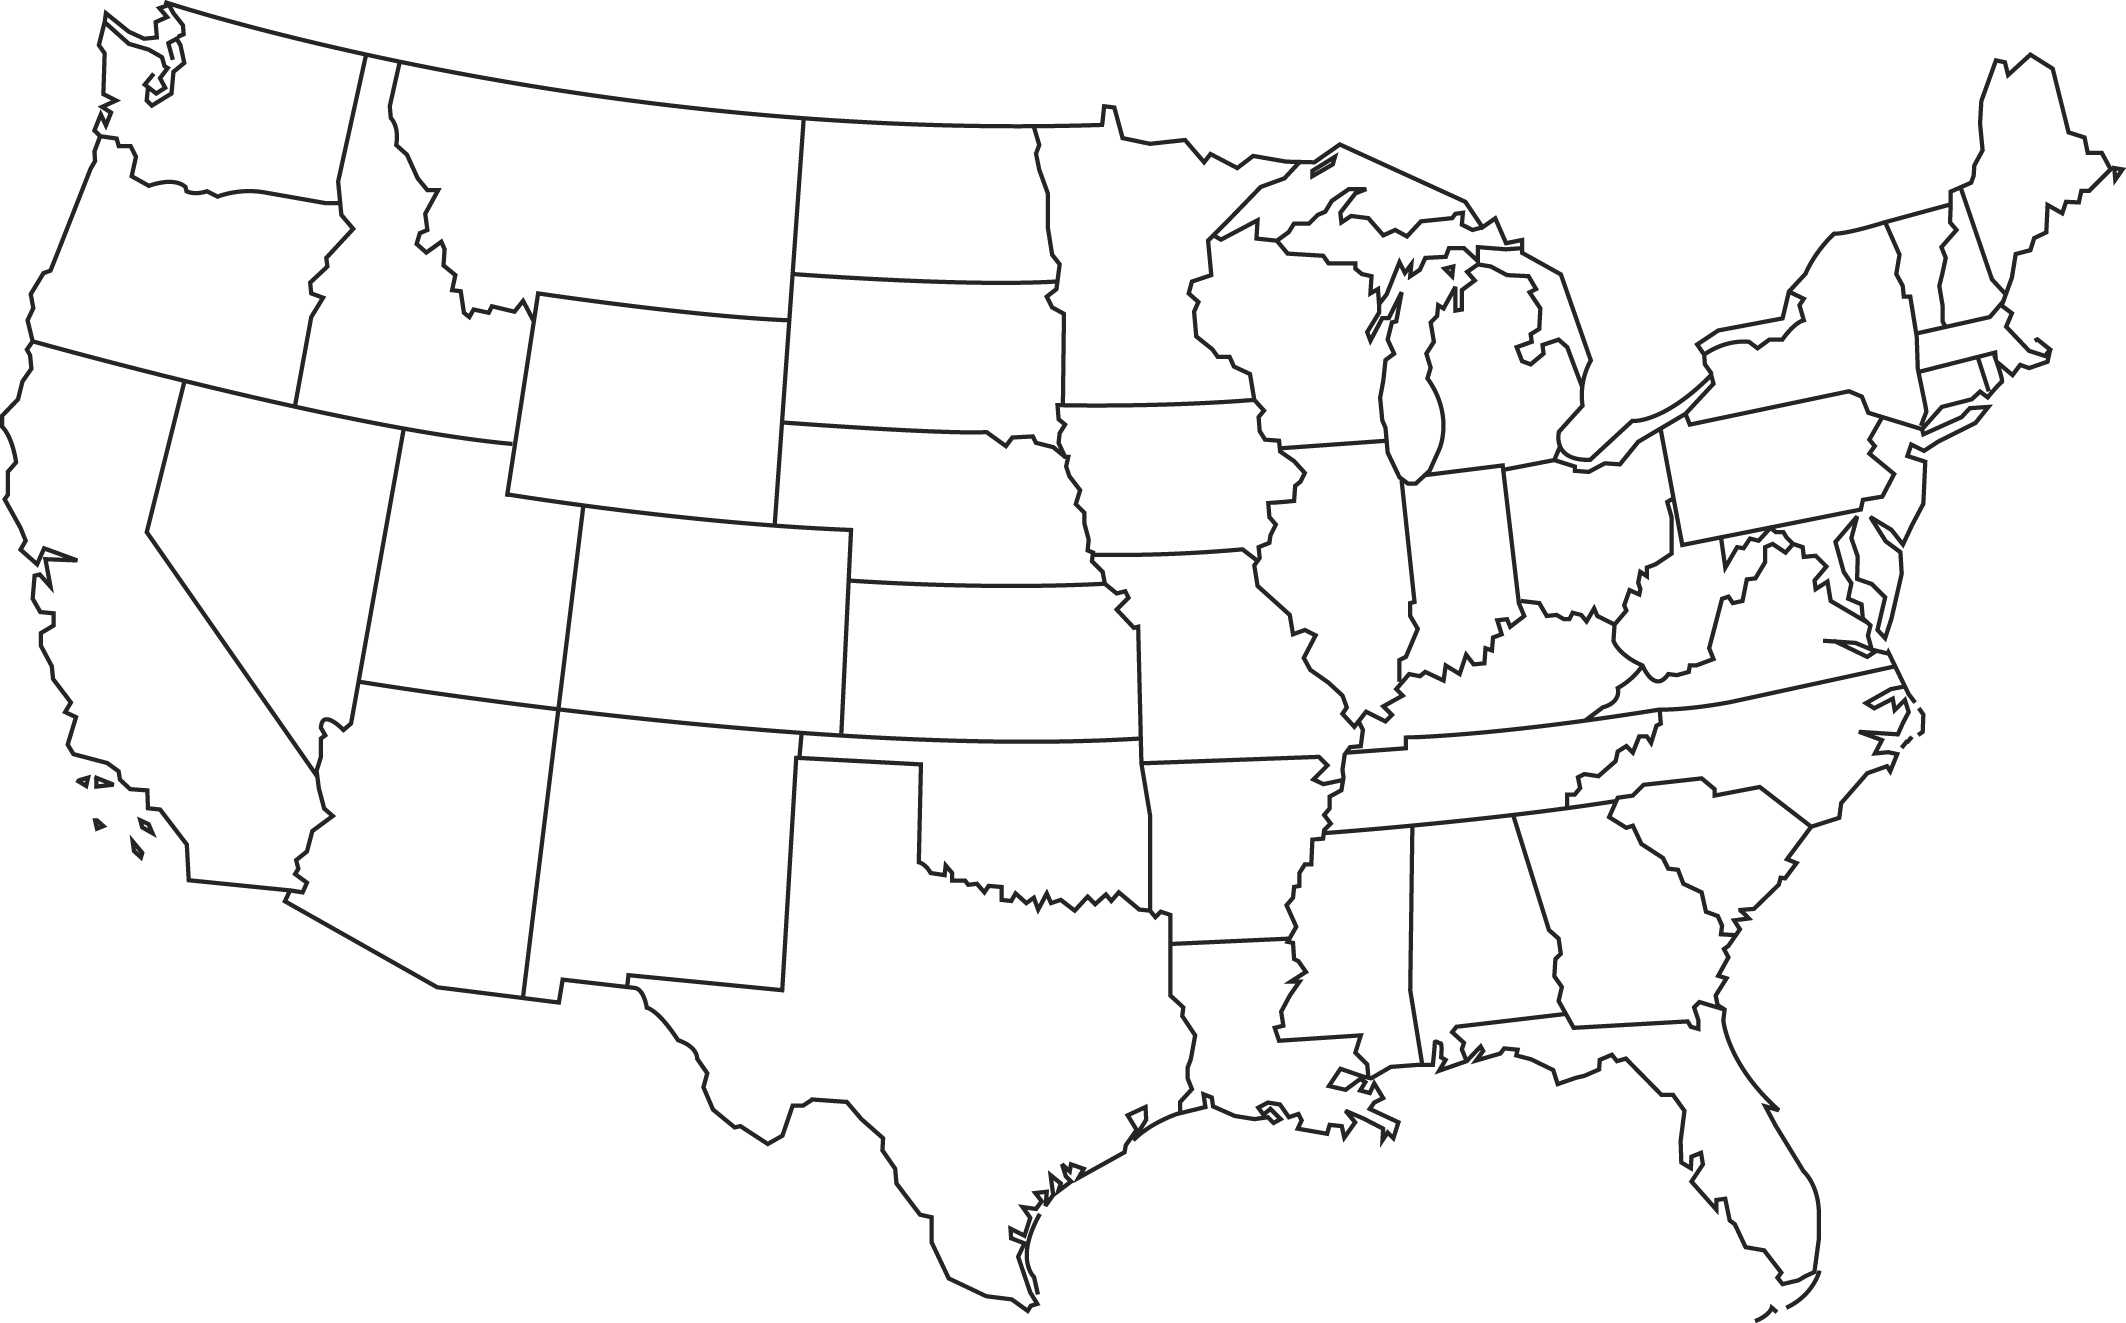 Free United States Of America Map United States Maps - A picture of the united states of america map